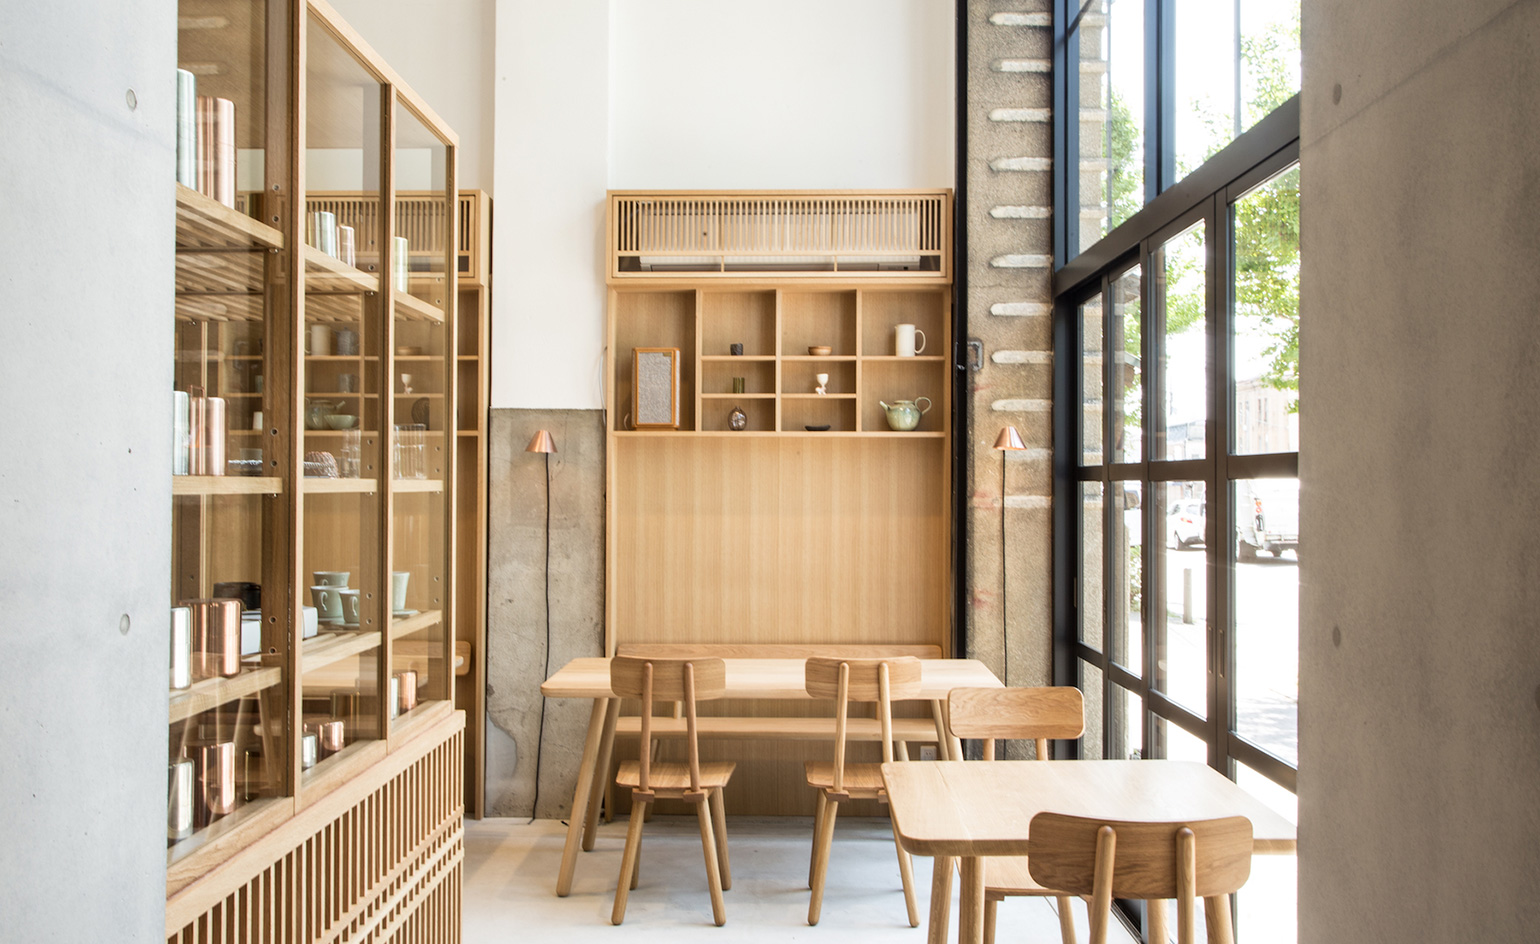 Kaikado Cafe Restaurant Review Kyoto Japan Wallpaper - Architecture-design-in-kyoto-japan